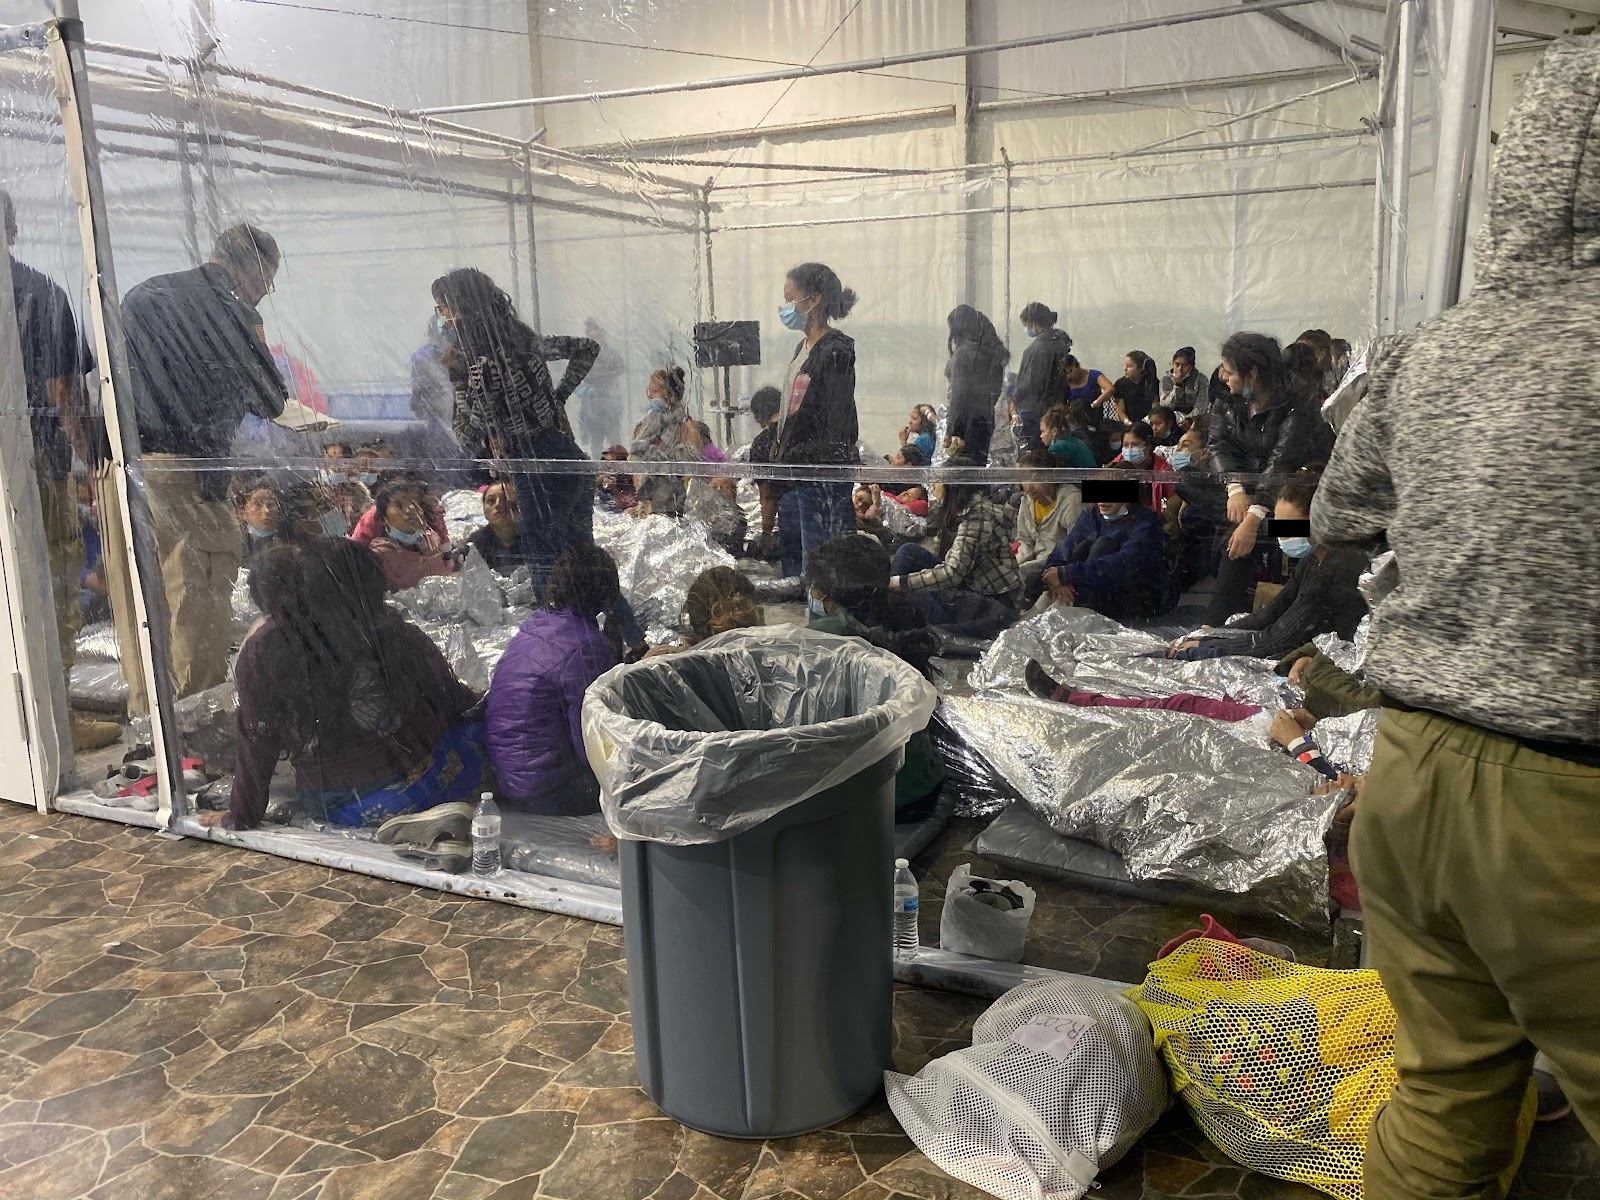 Images showing migrants in close quarters at the temporary Donna Immigration Facility in Texas. Positive COVID-19 cases, as well as sexual and physical assaults were reported by whistle blowers.